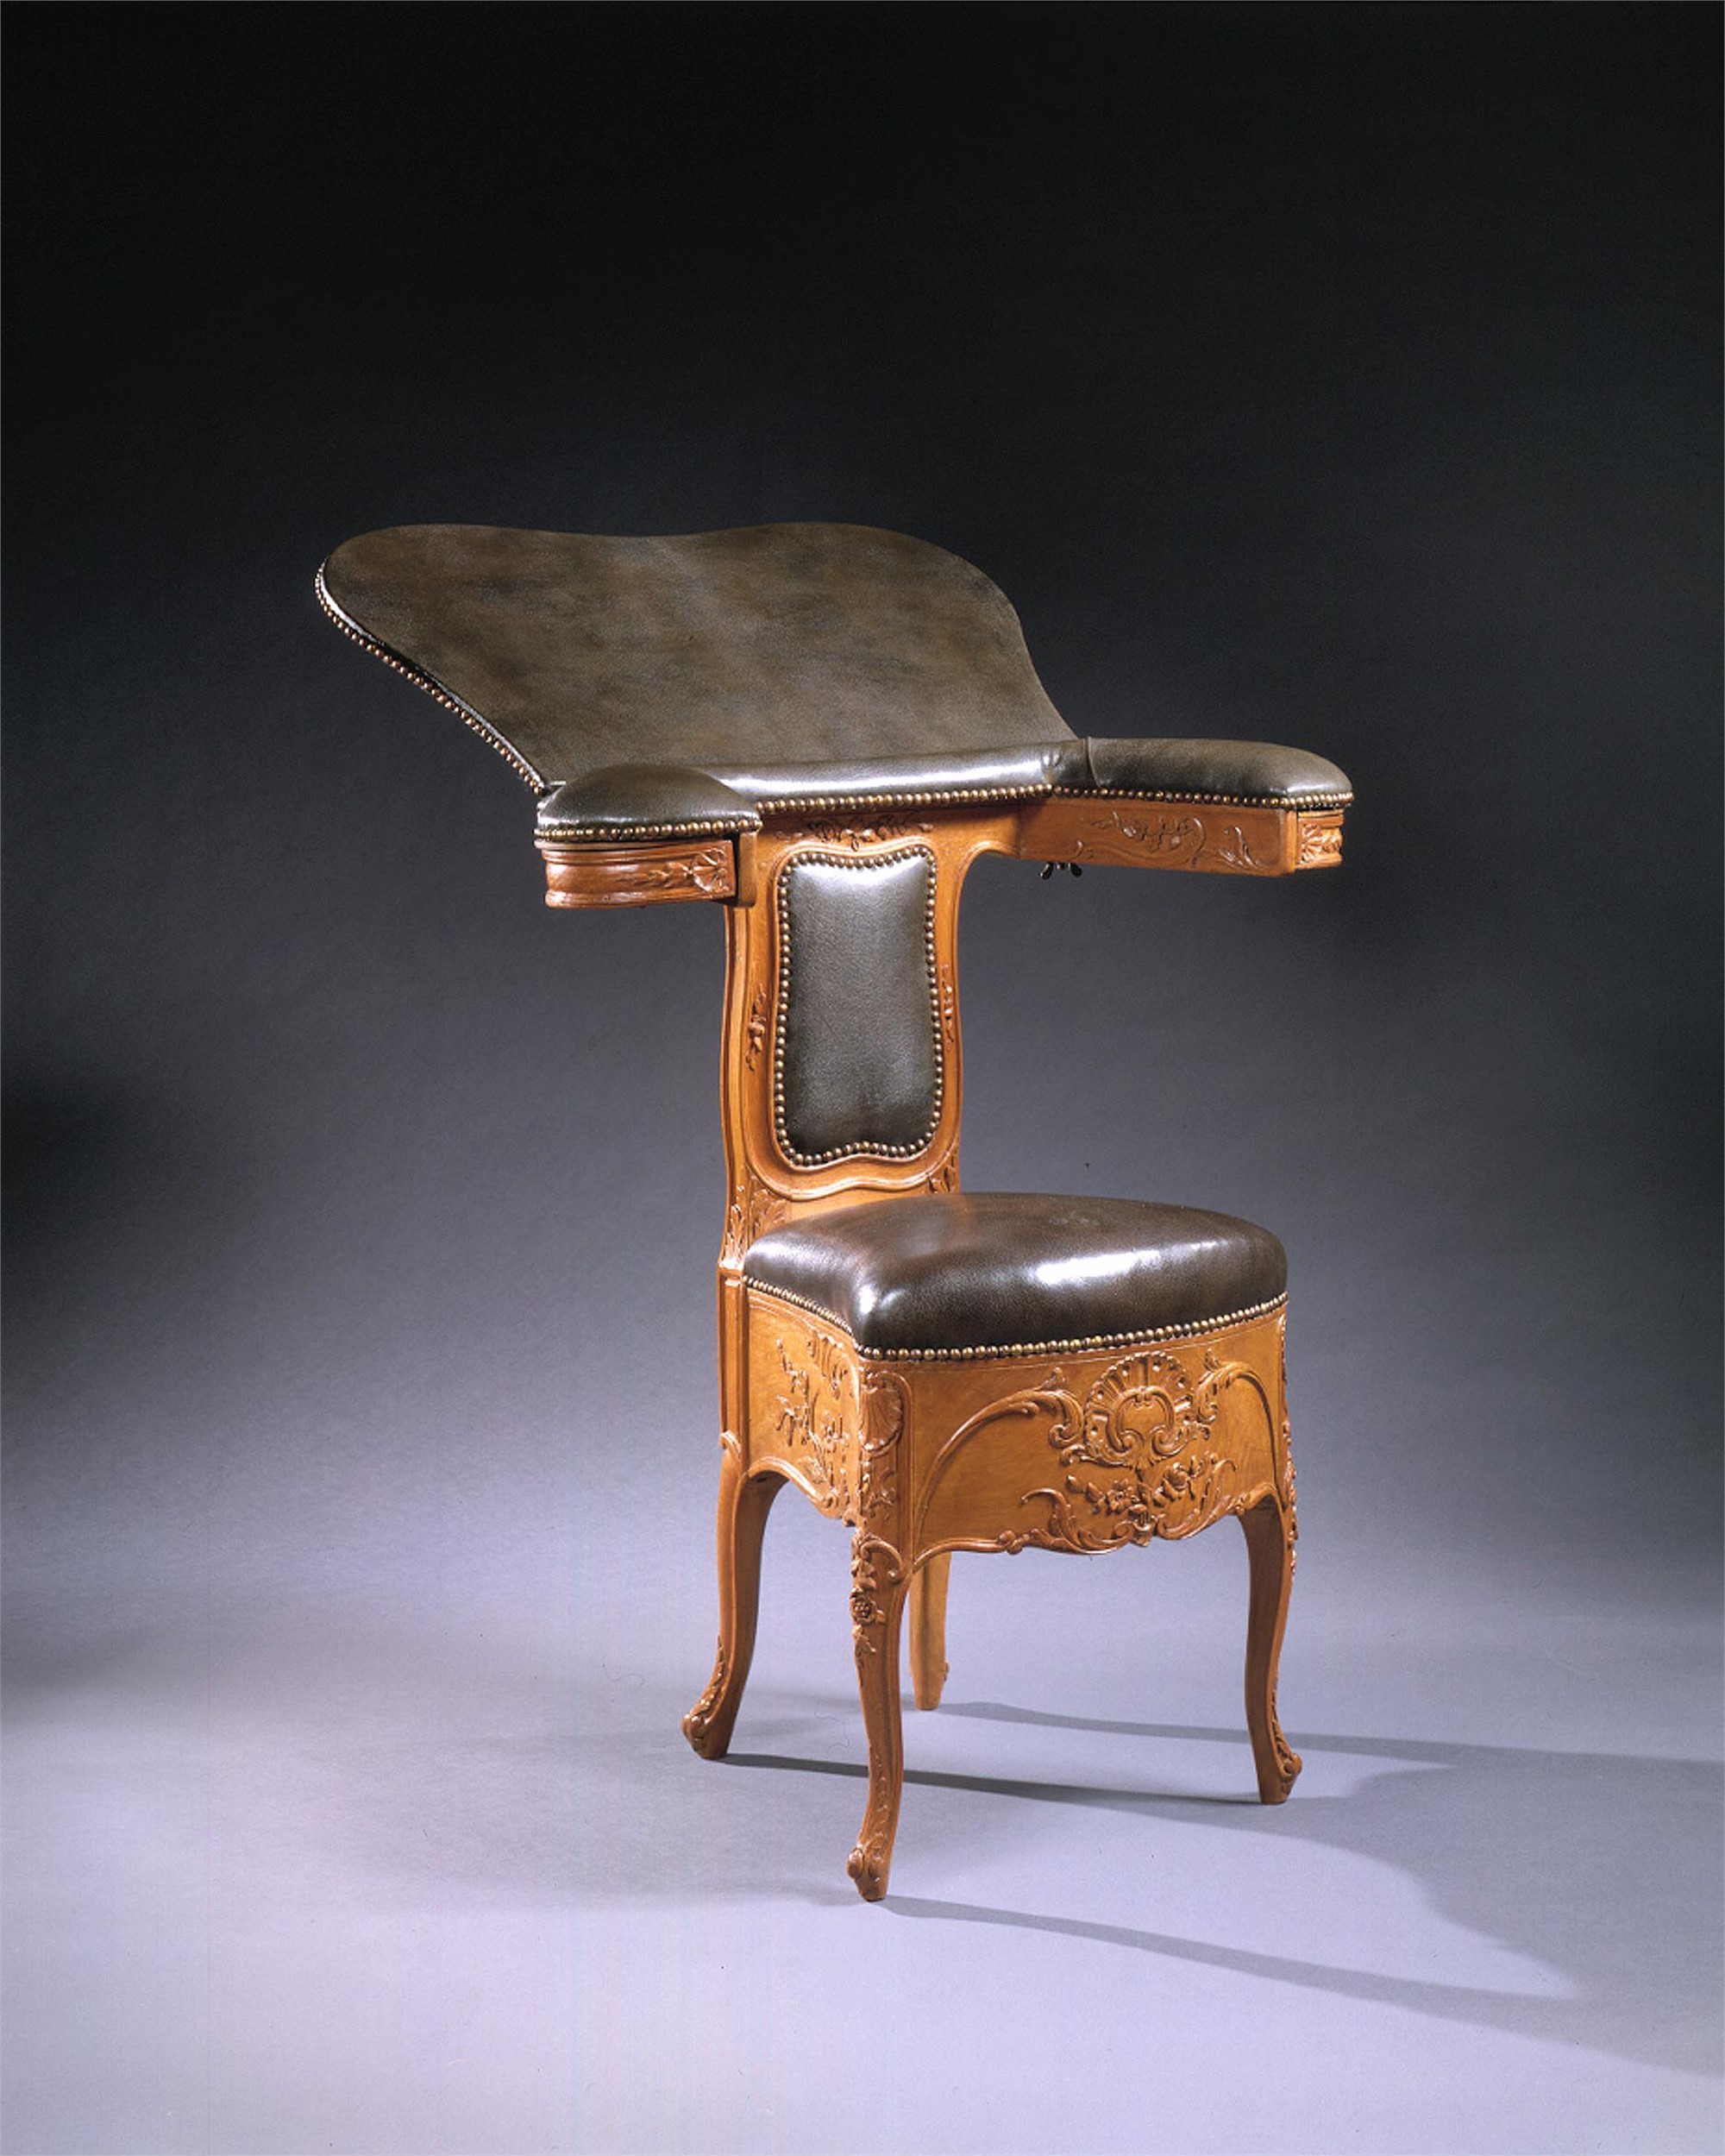 LOUIS XV ACQUARELLISTE CHAIR